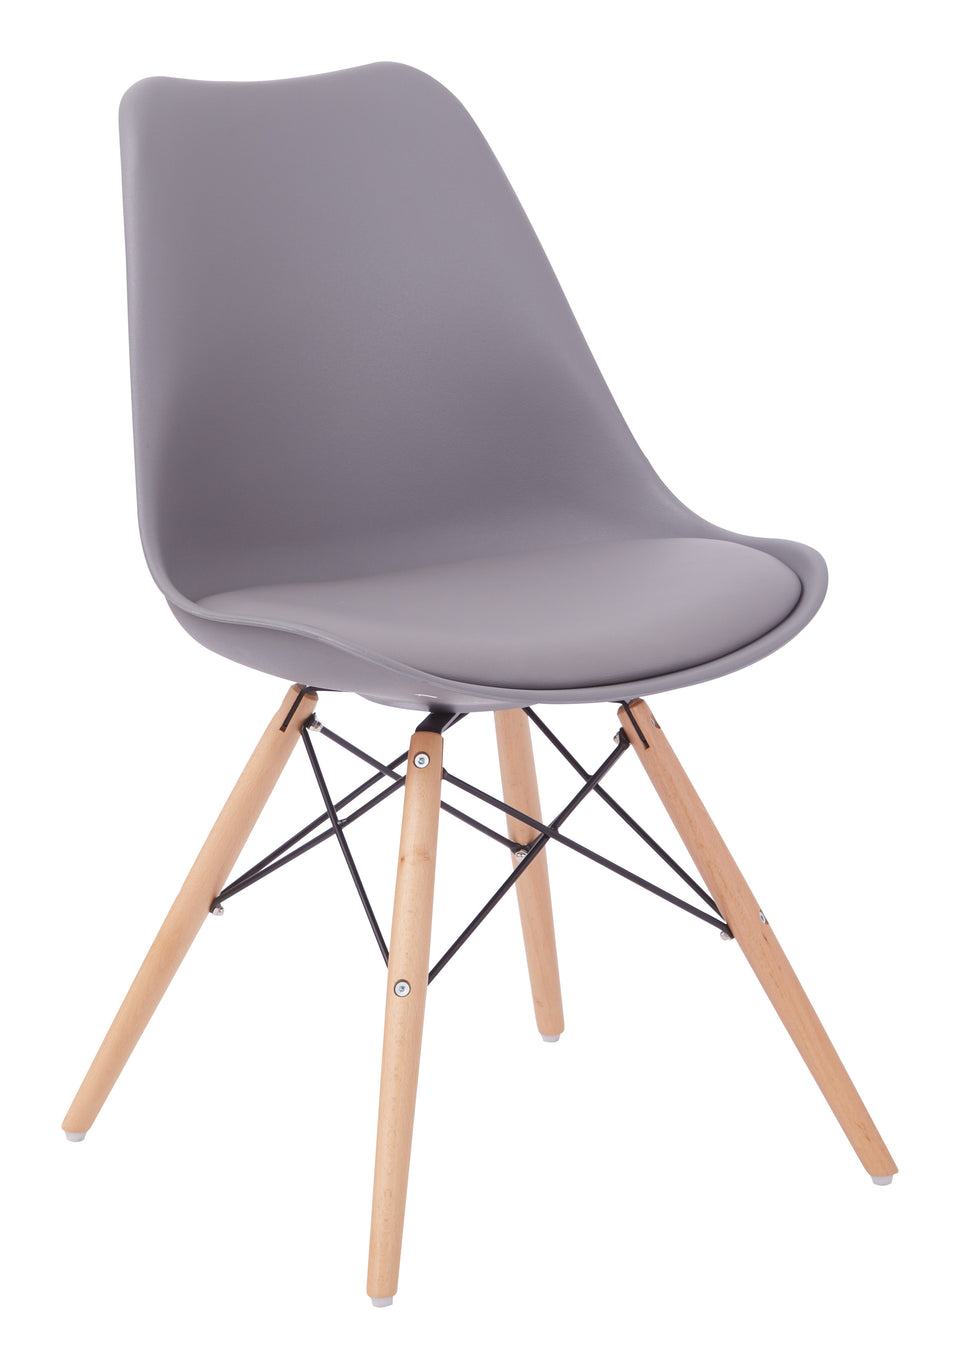 mid century modern aimes gray bucket chair with natural post legs scandinavian design inspired from decurban.com